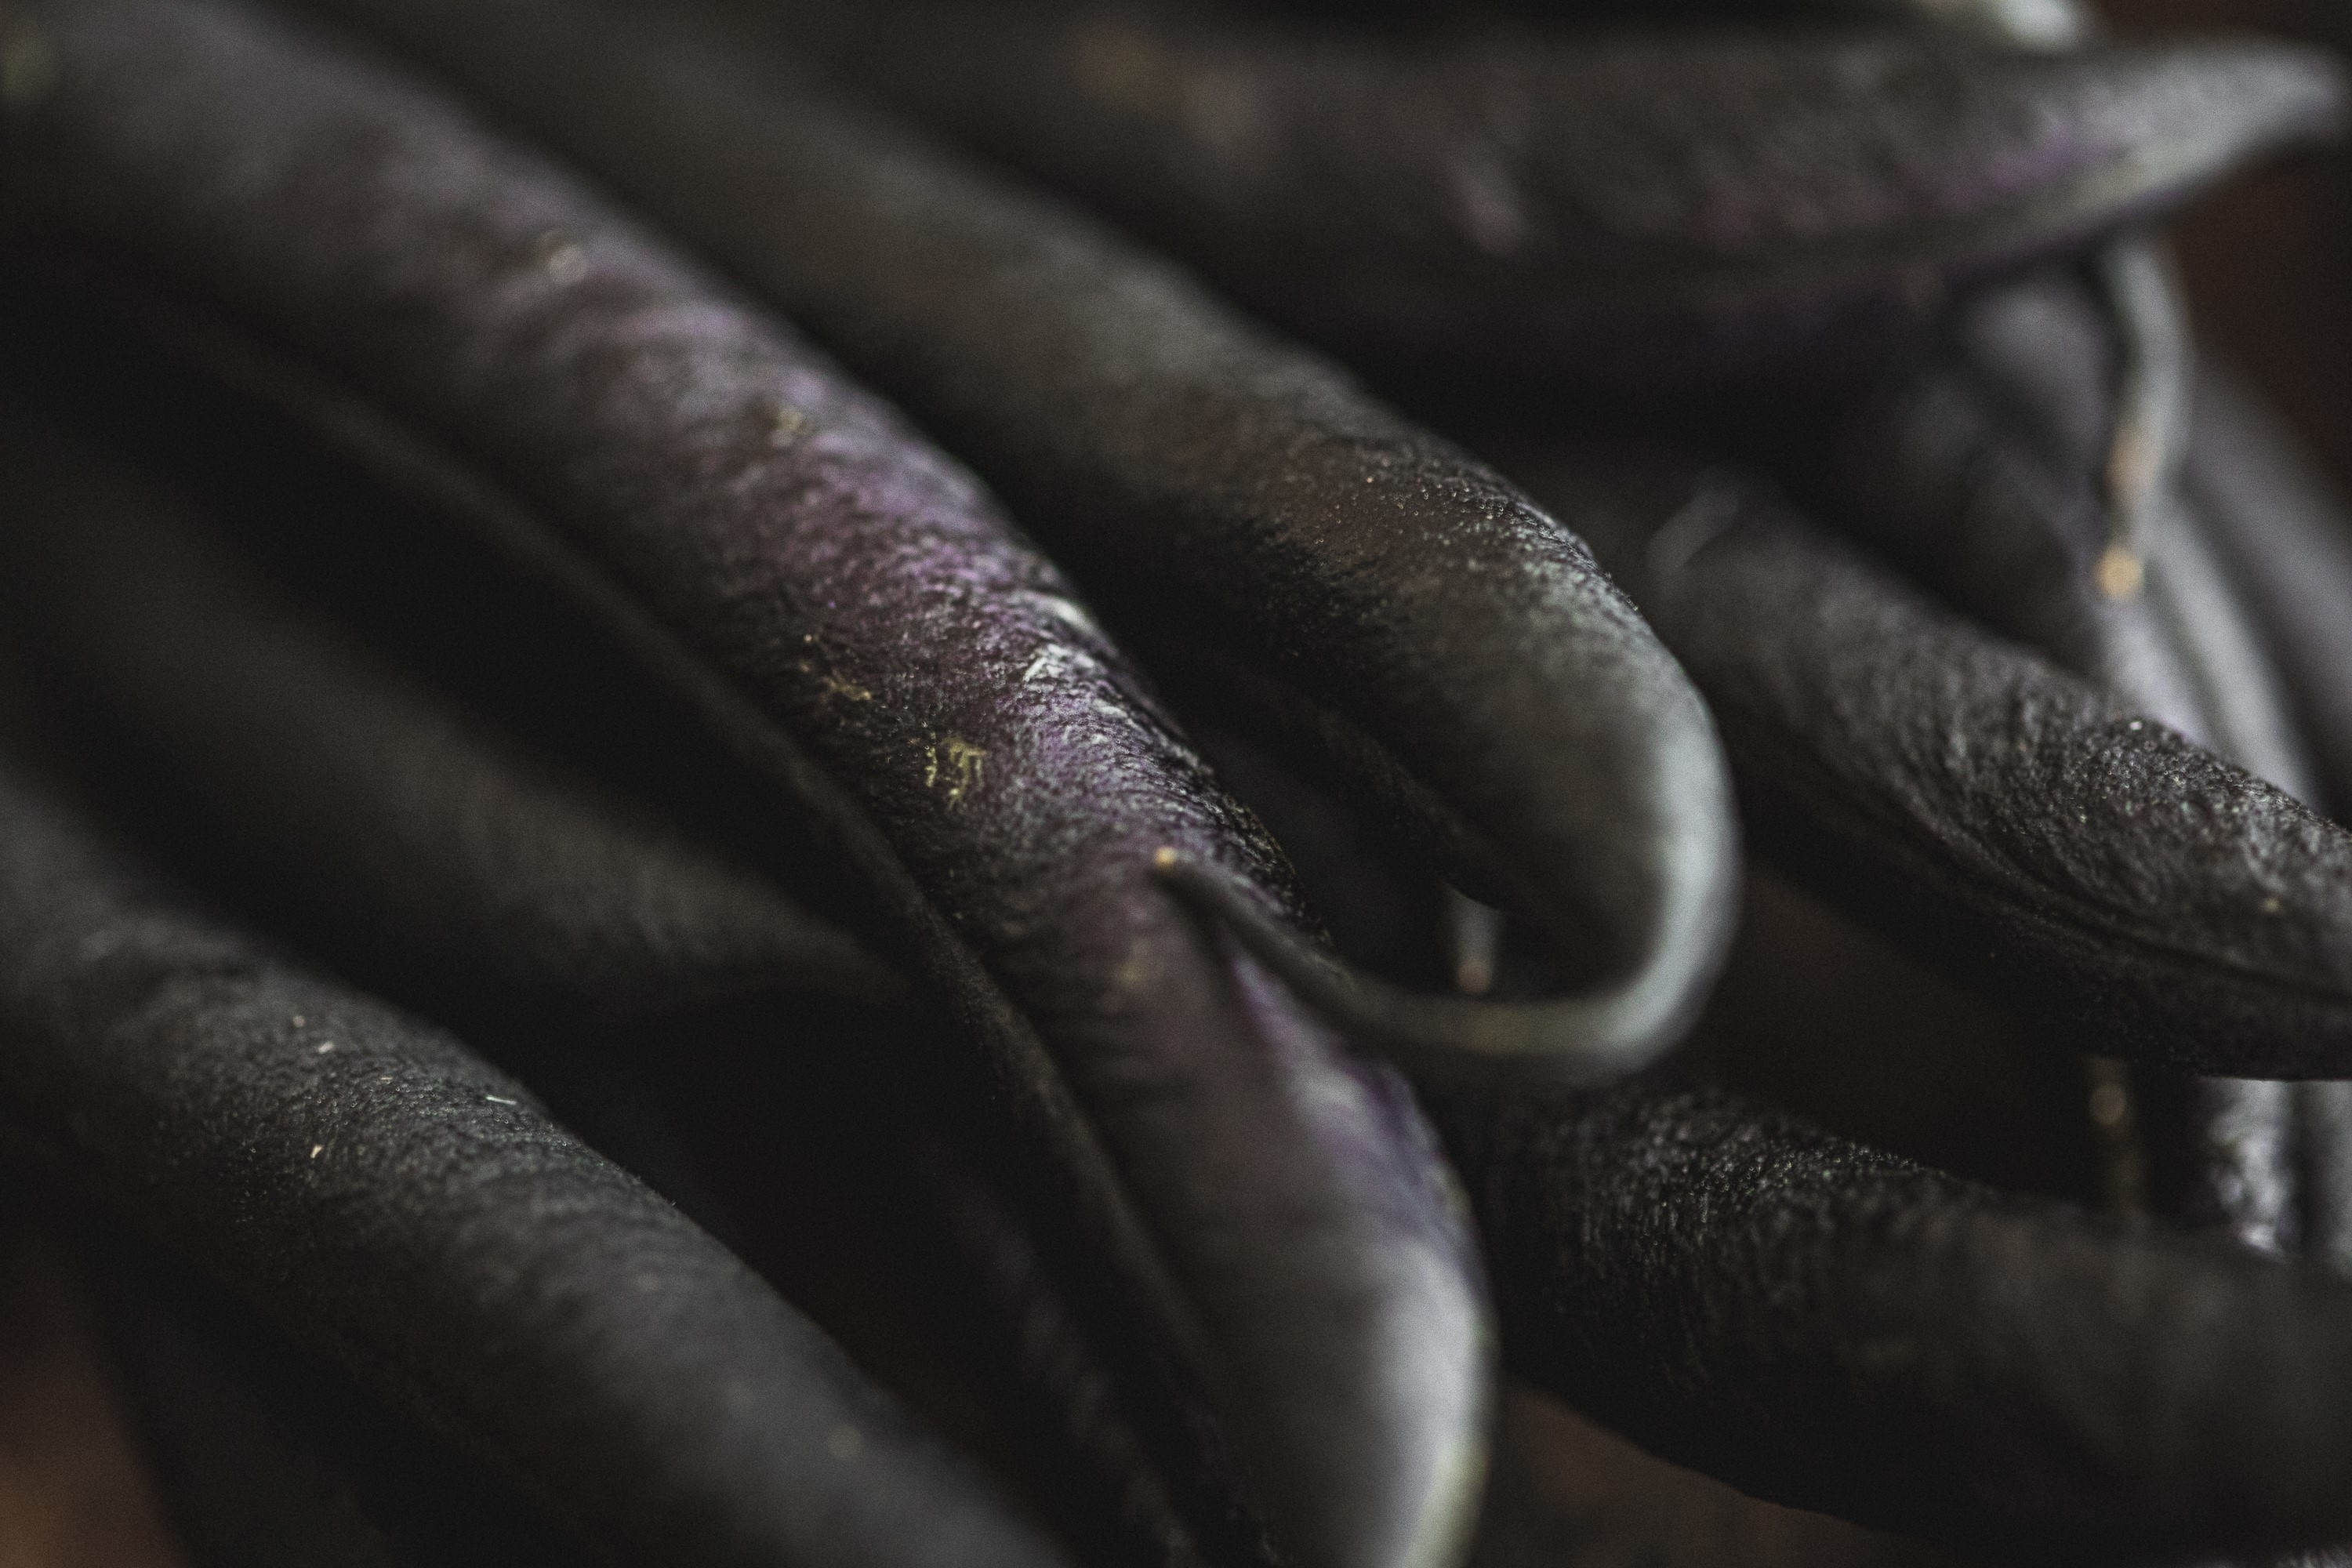 Purple French beans